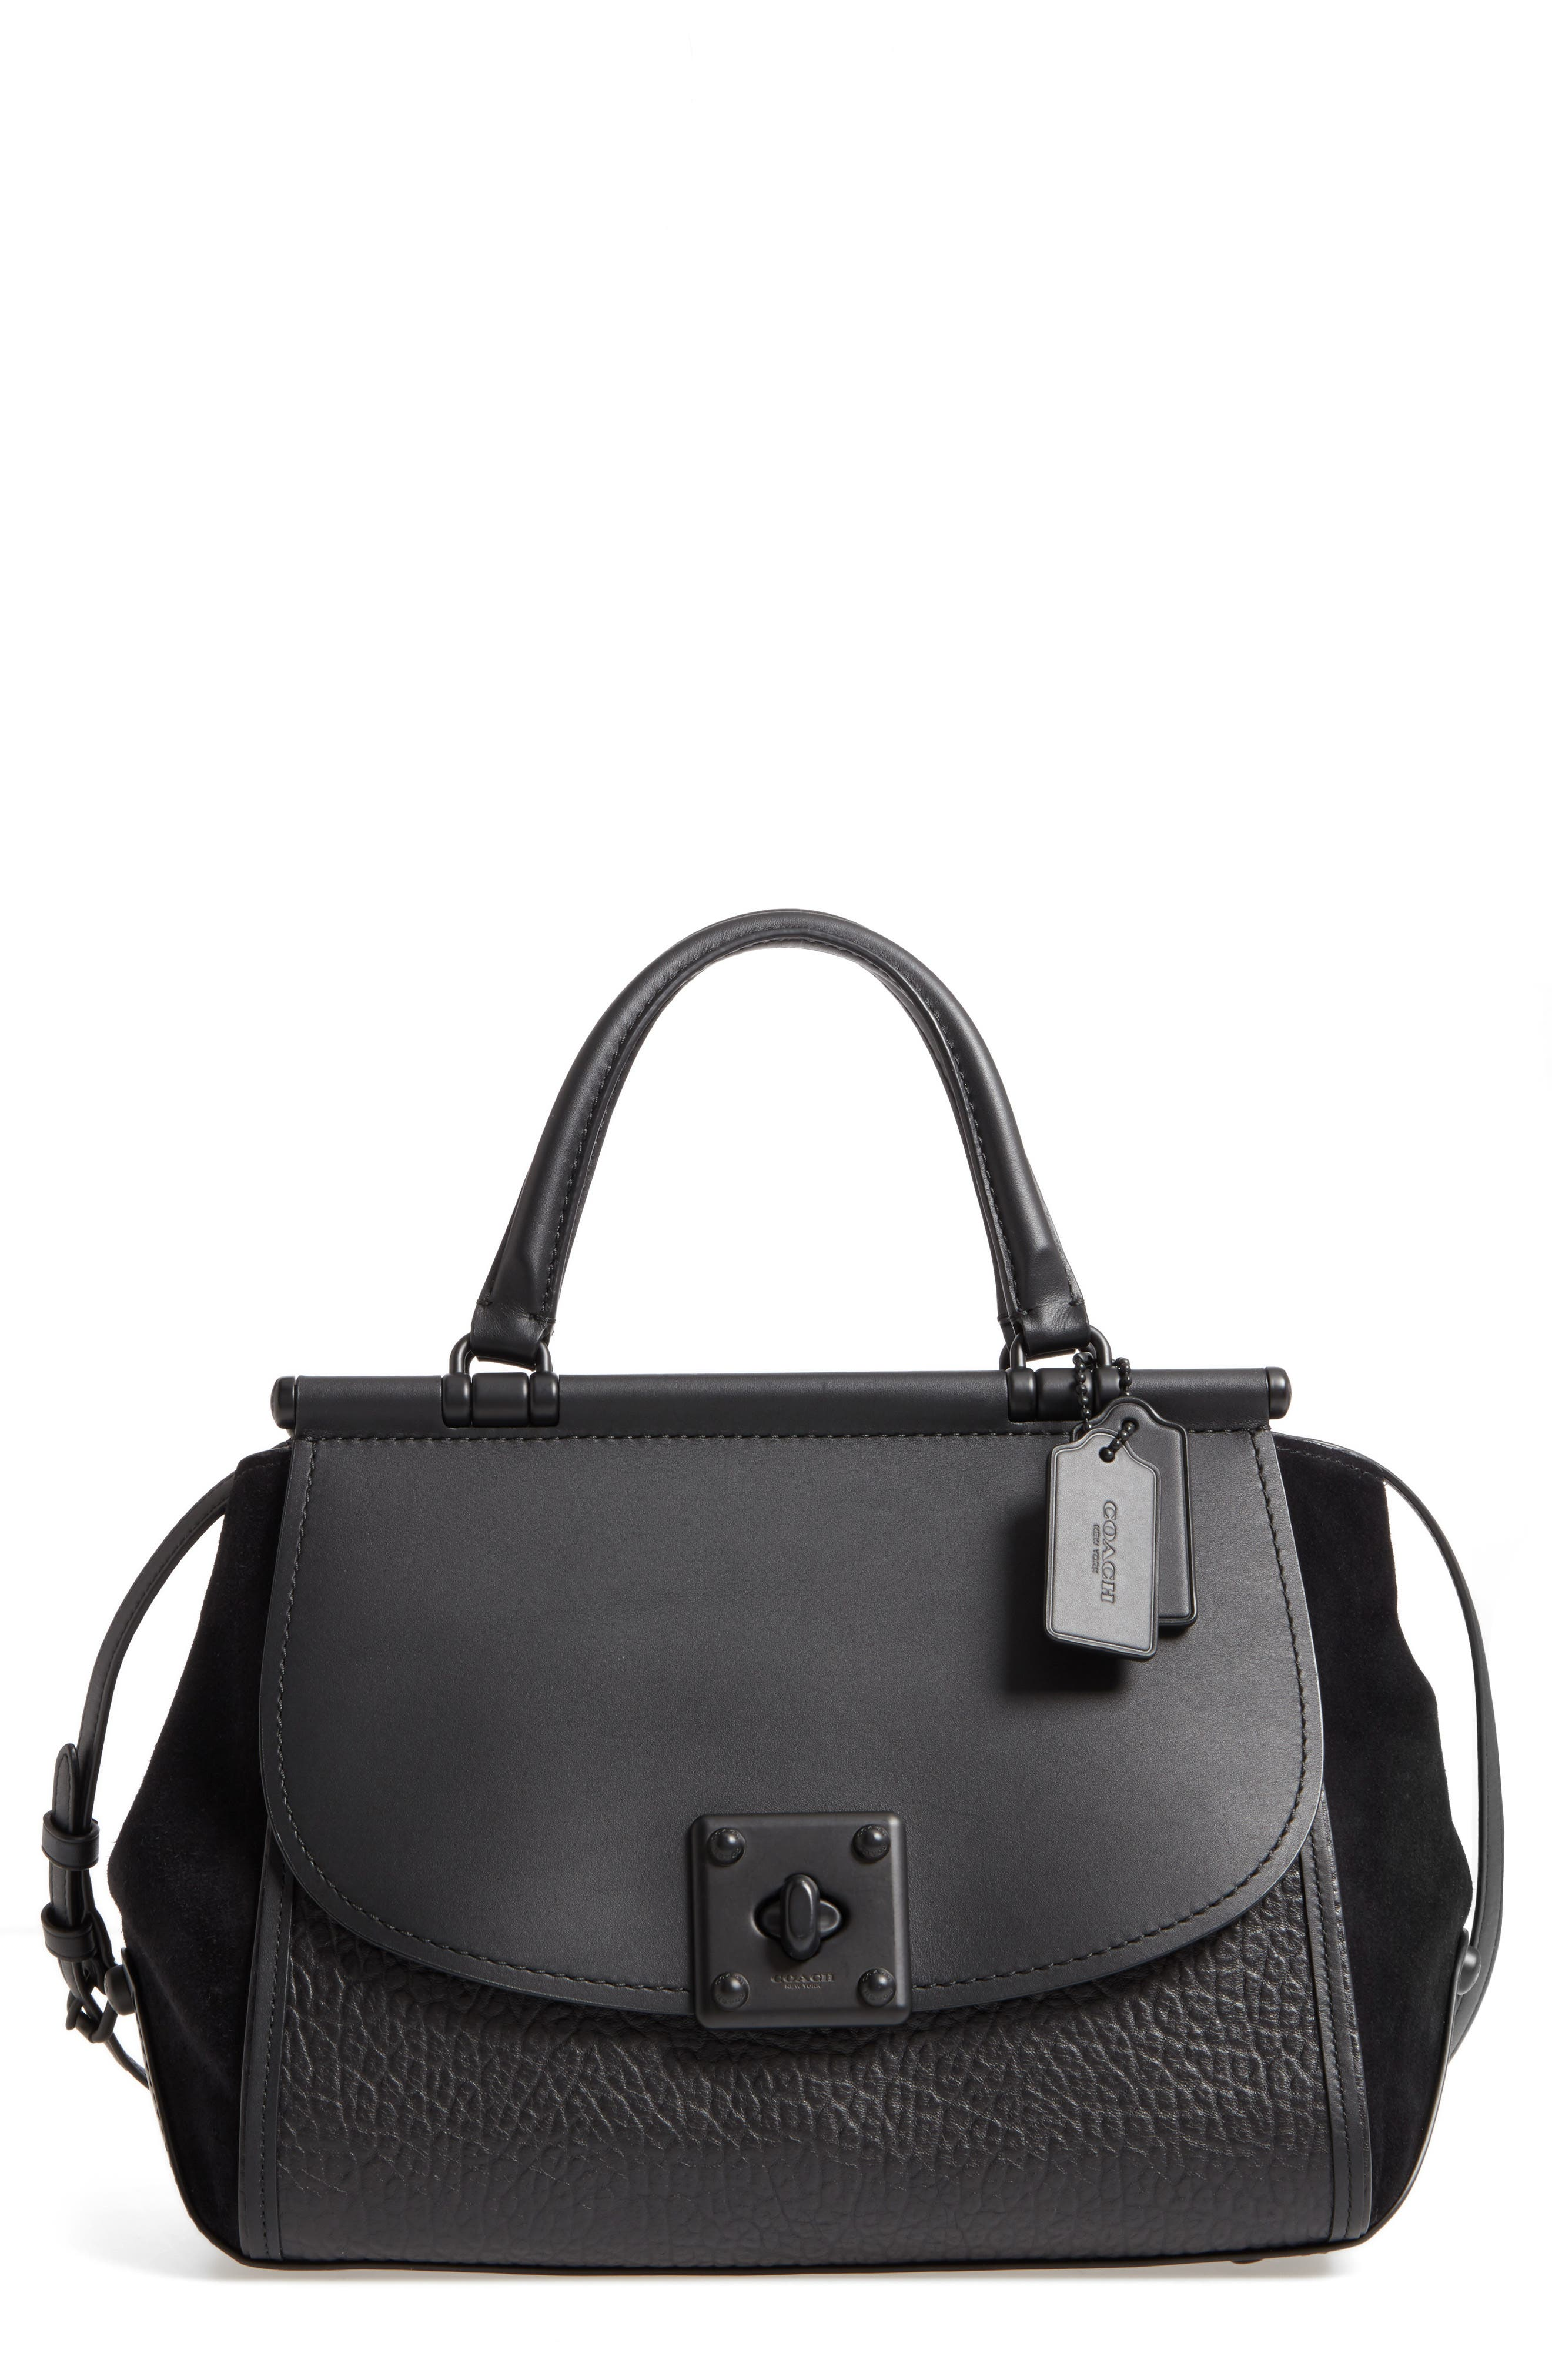 Alternate Image 1 Selected - COACH Mixed Leather Satchel